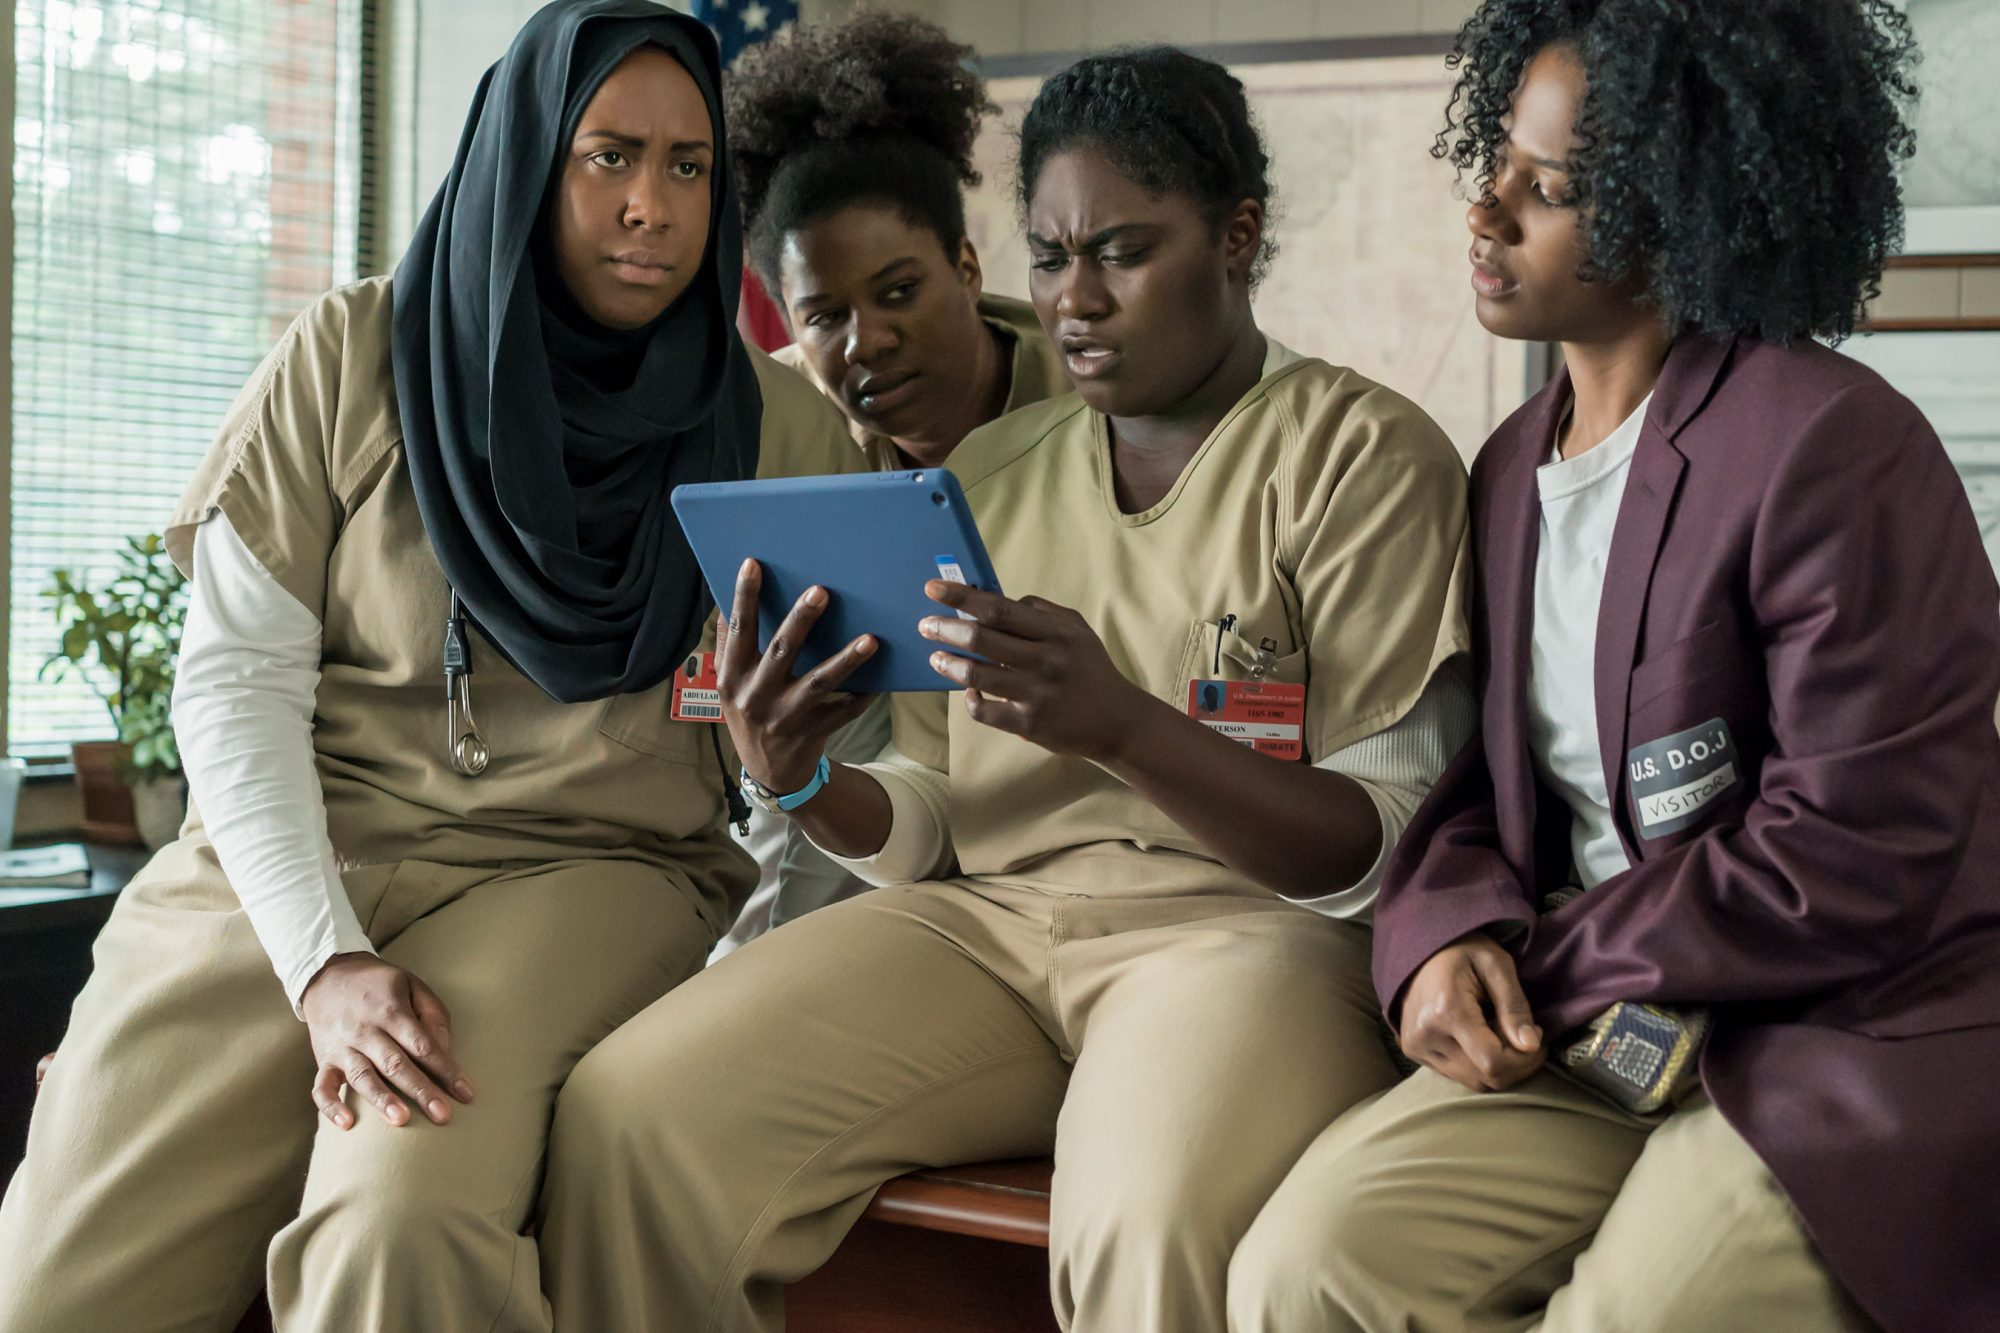 Amanda Stephen as Alison Abdullah, Adrienne C. Moore as Cindy  Black Cindy  Hayes, Danielle Brooks as Tasha  Taystee  Jefferson, and Vicky Jeudy as Janae Watson